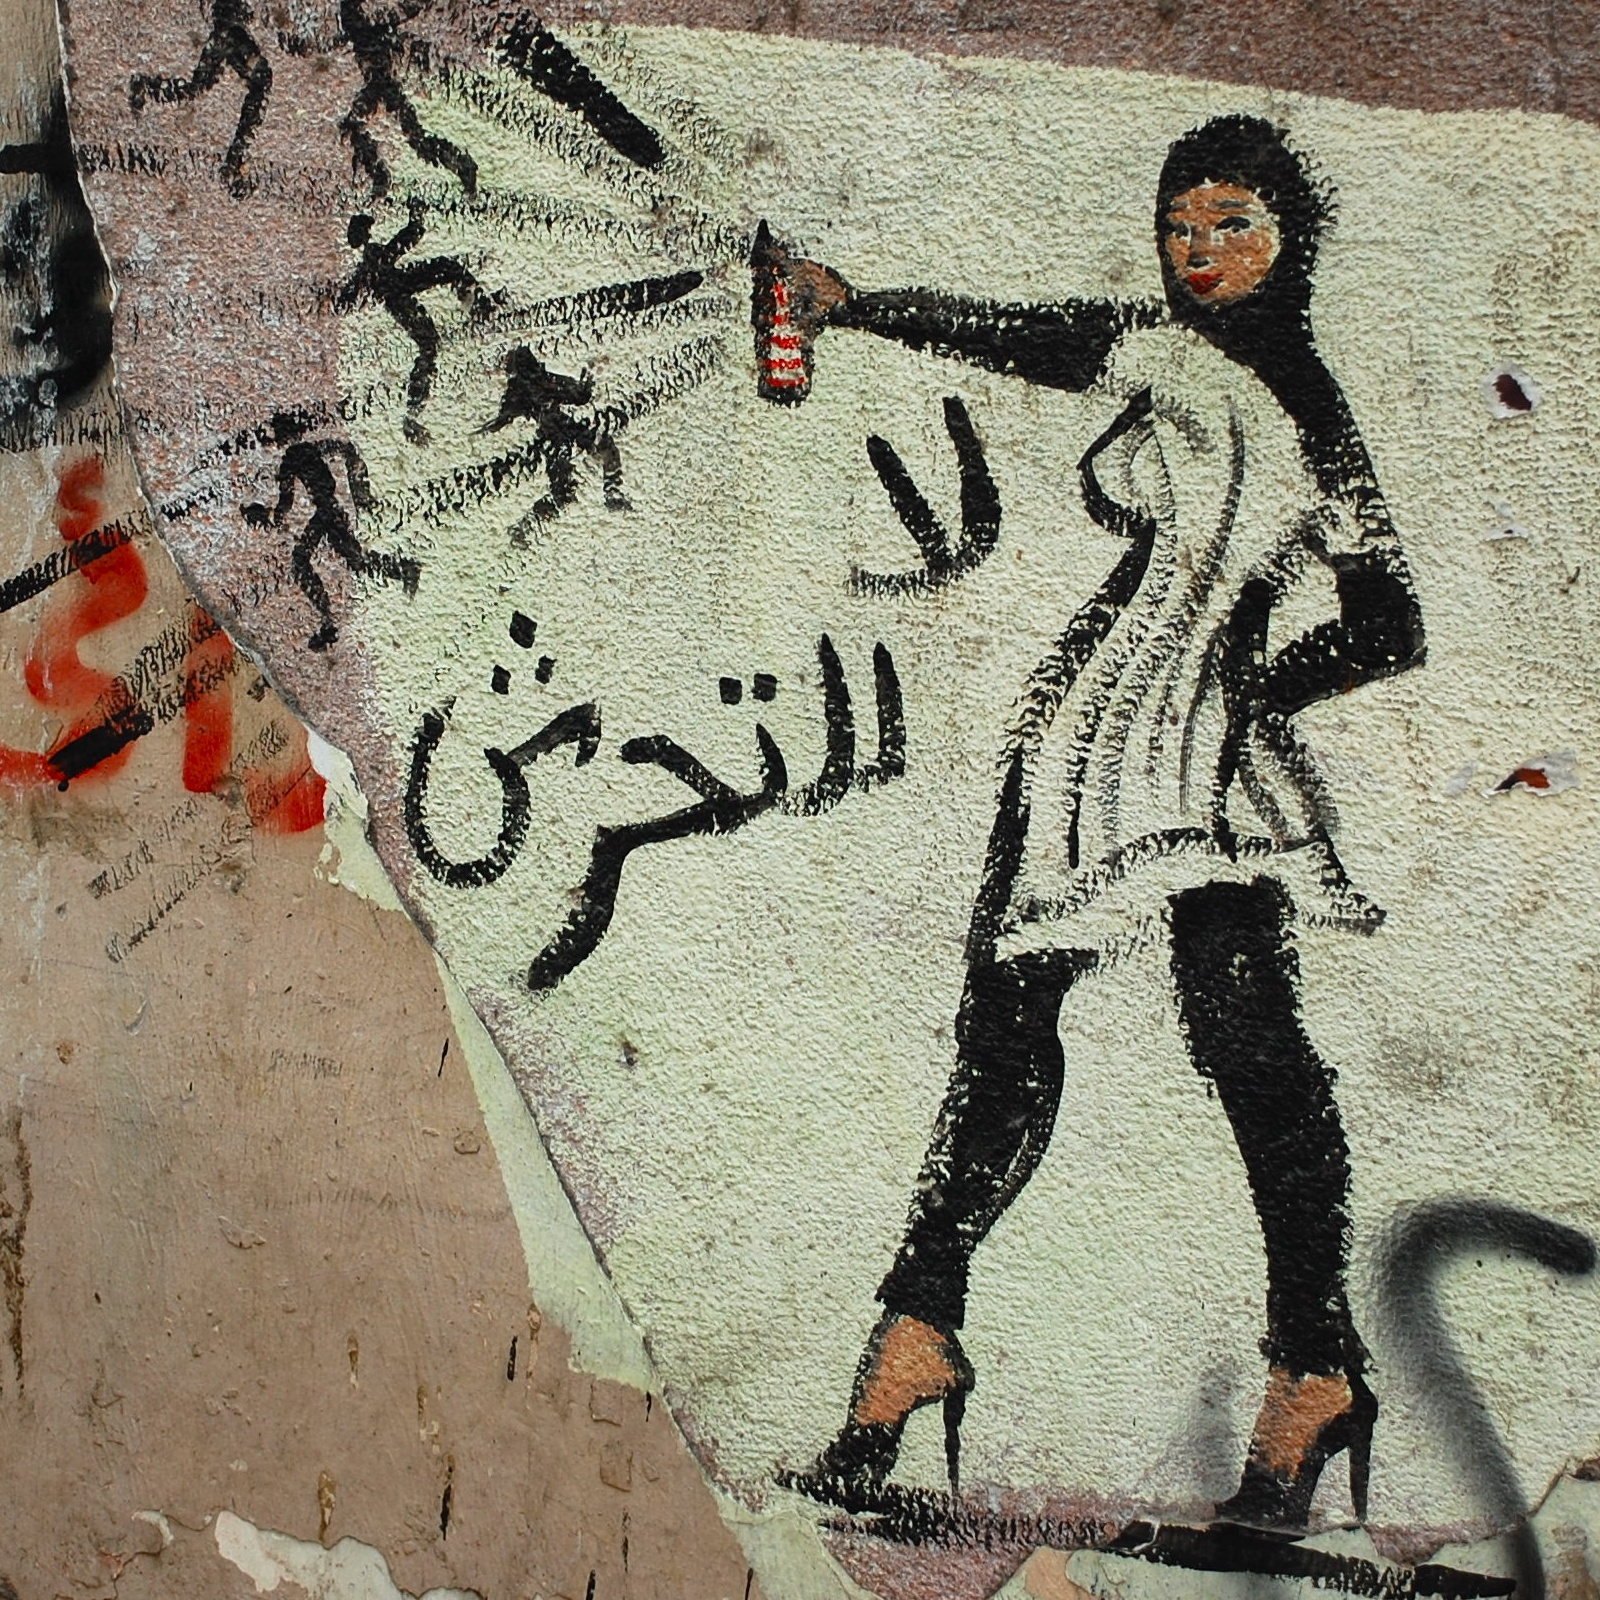 Colour photo of graffiti showing a woman spraying away small stickmen with a spraycan